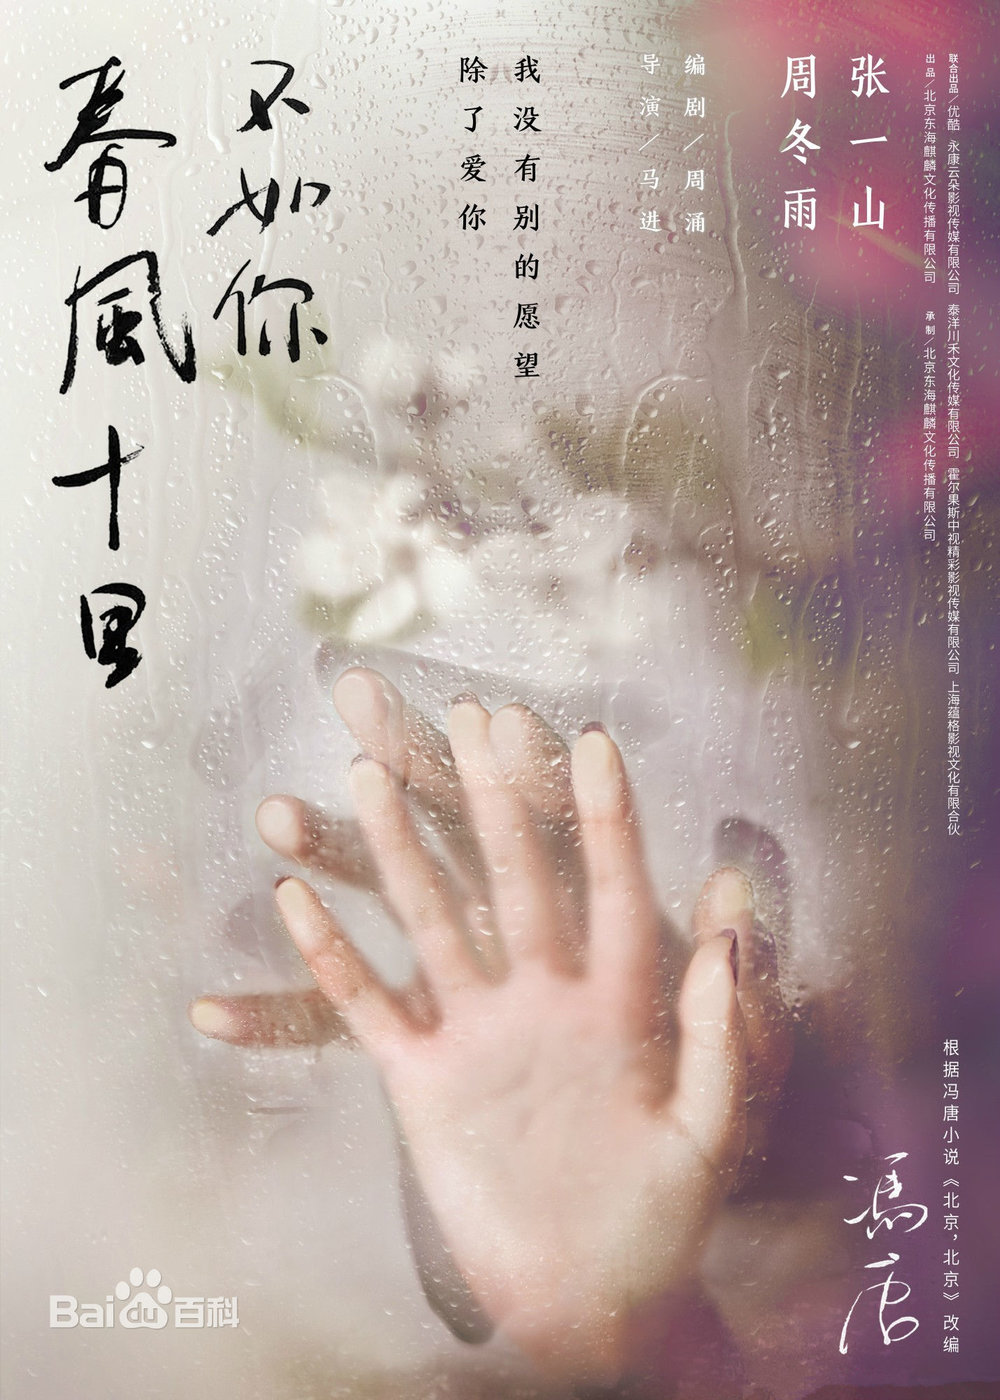 - SHALL I COMPARE YOU TO A SPRING DAY春风十里不如你Status: July 21Length: 40 EpisodesMain Cast: Zhou Dongyu 周冬雨 Zhang Yishan 张一山